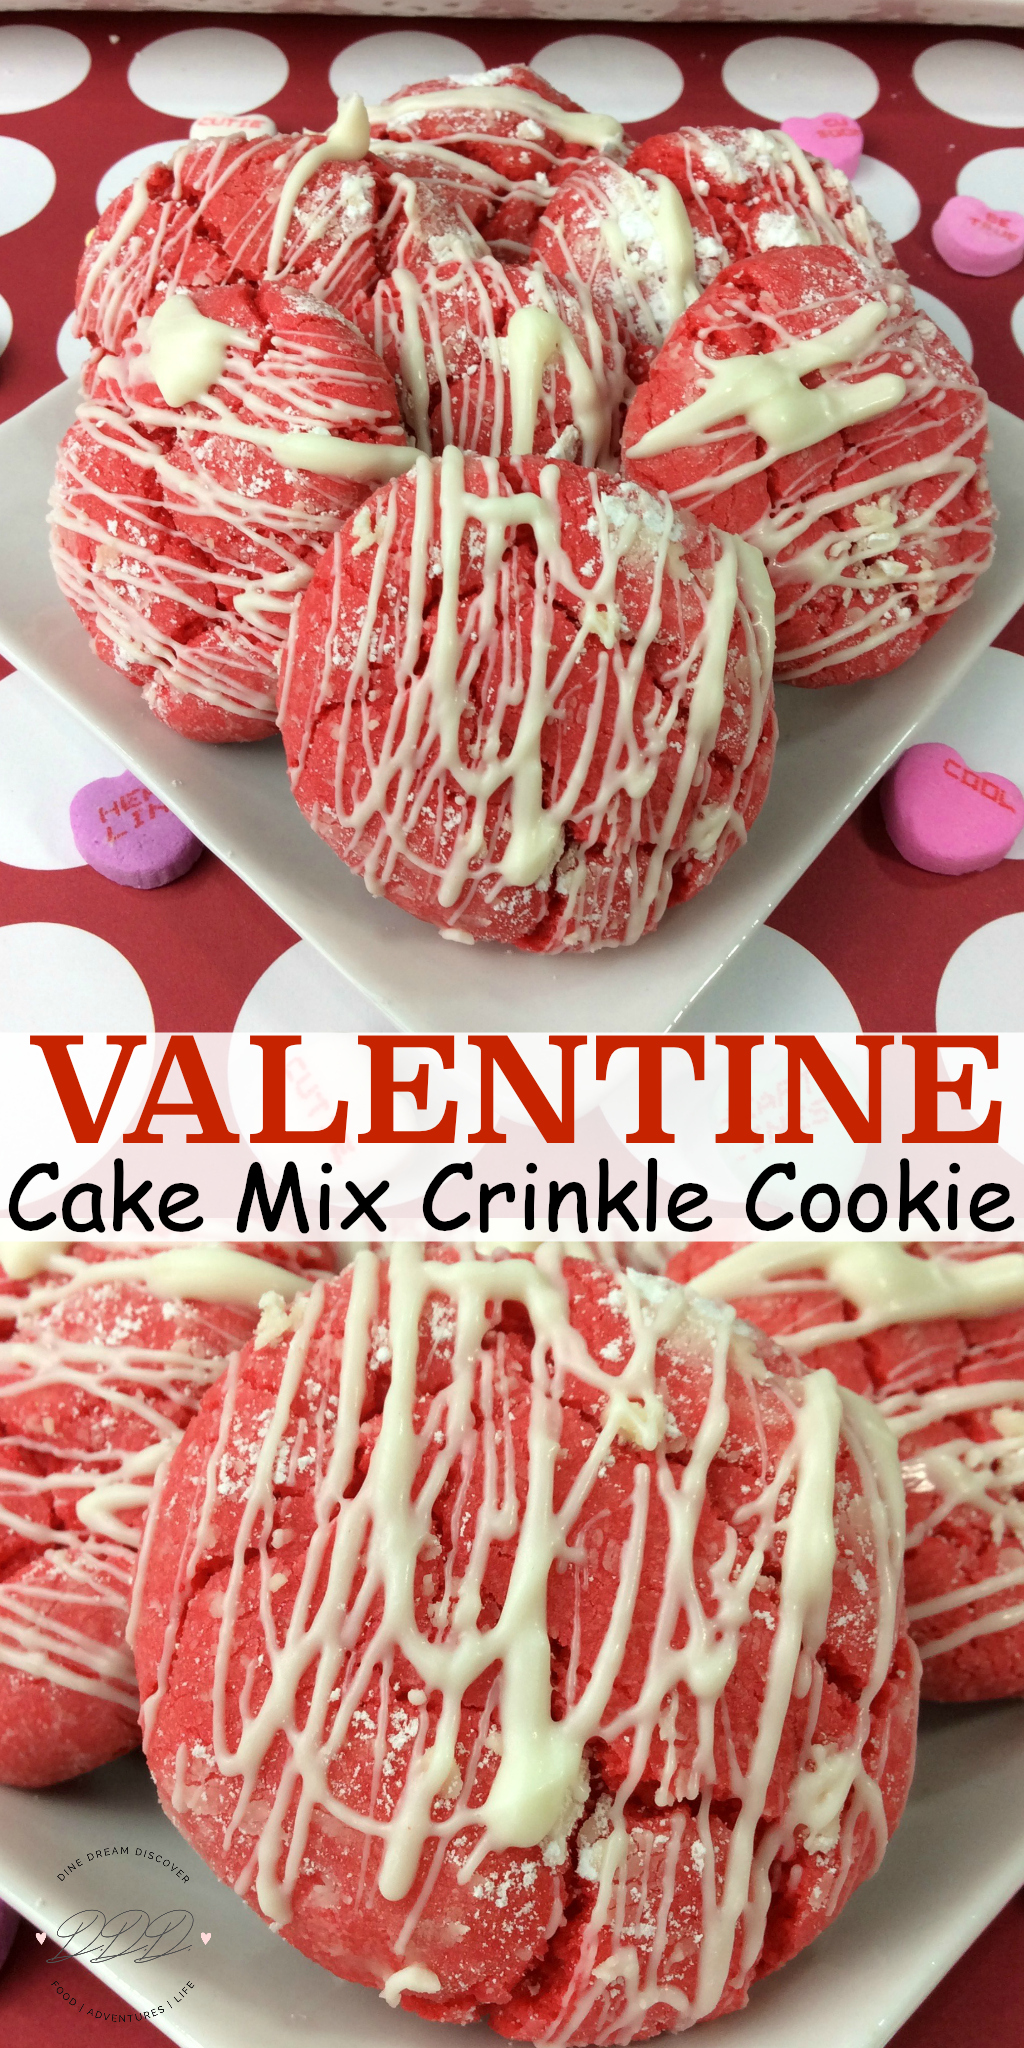 A deliciously and easy Valentine Cake Mix Crinkle Cookie recipe made with a white cake mix and topped with white chocolate drizzle.